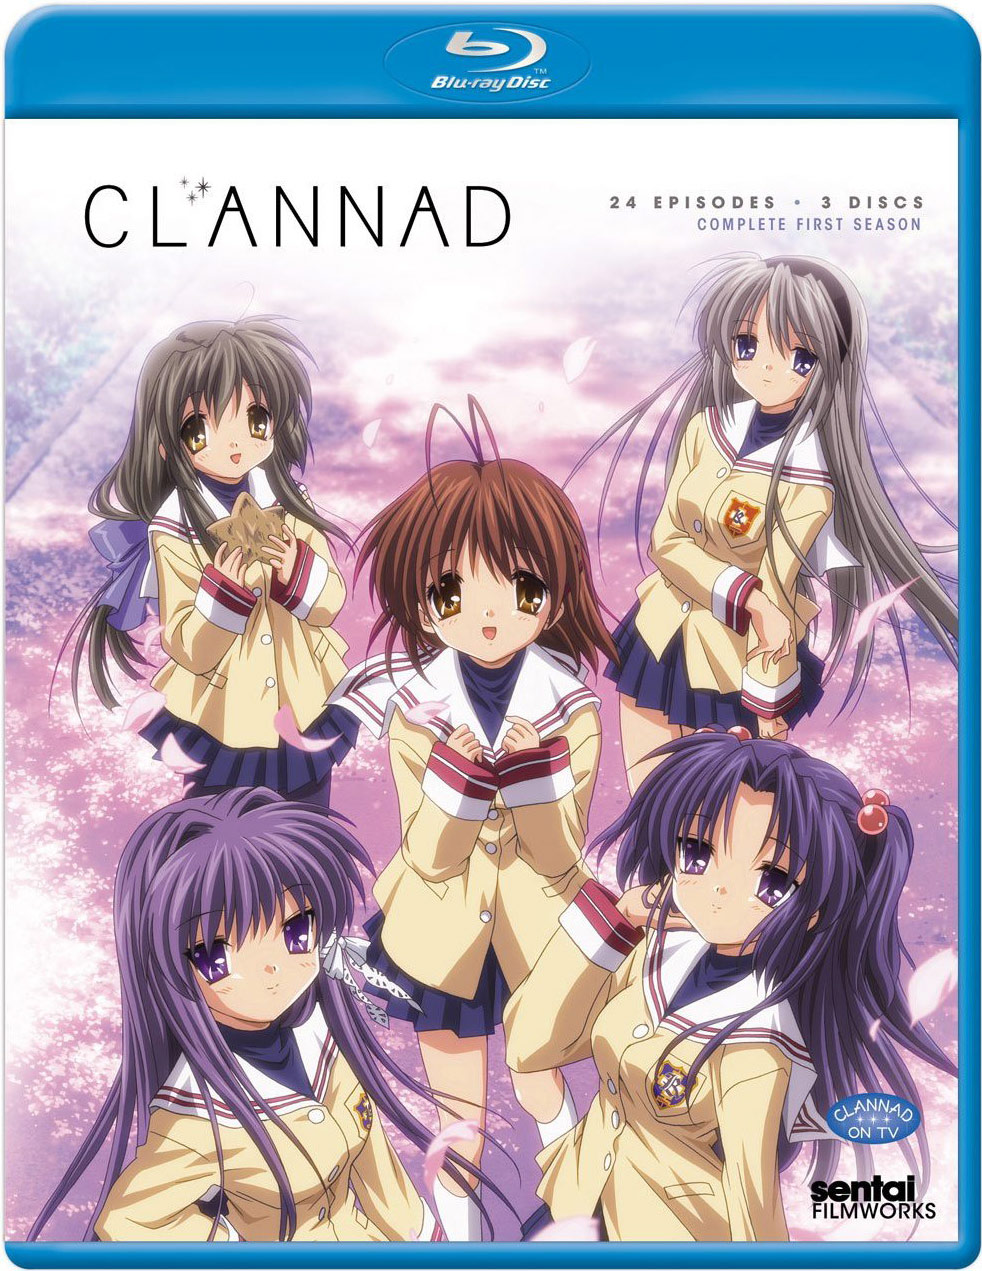 Clannad Blu-ray Complete Collection (Right Stuf)